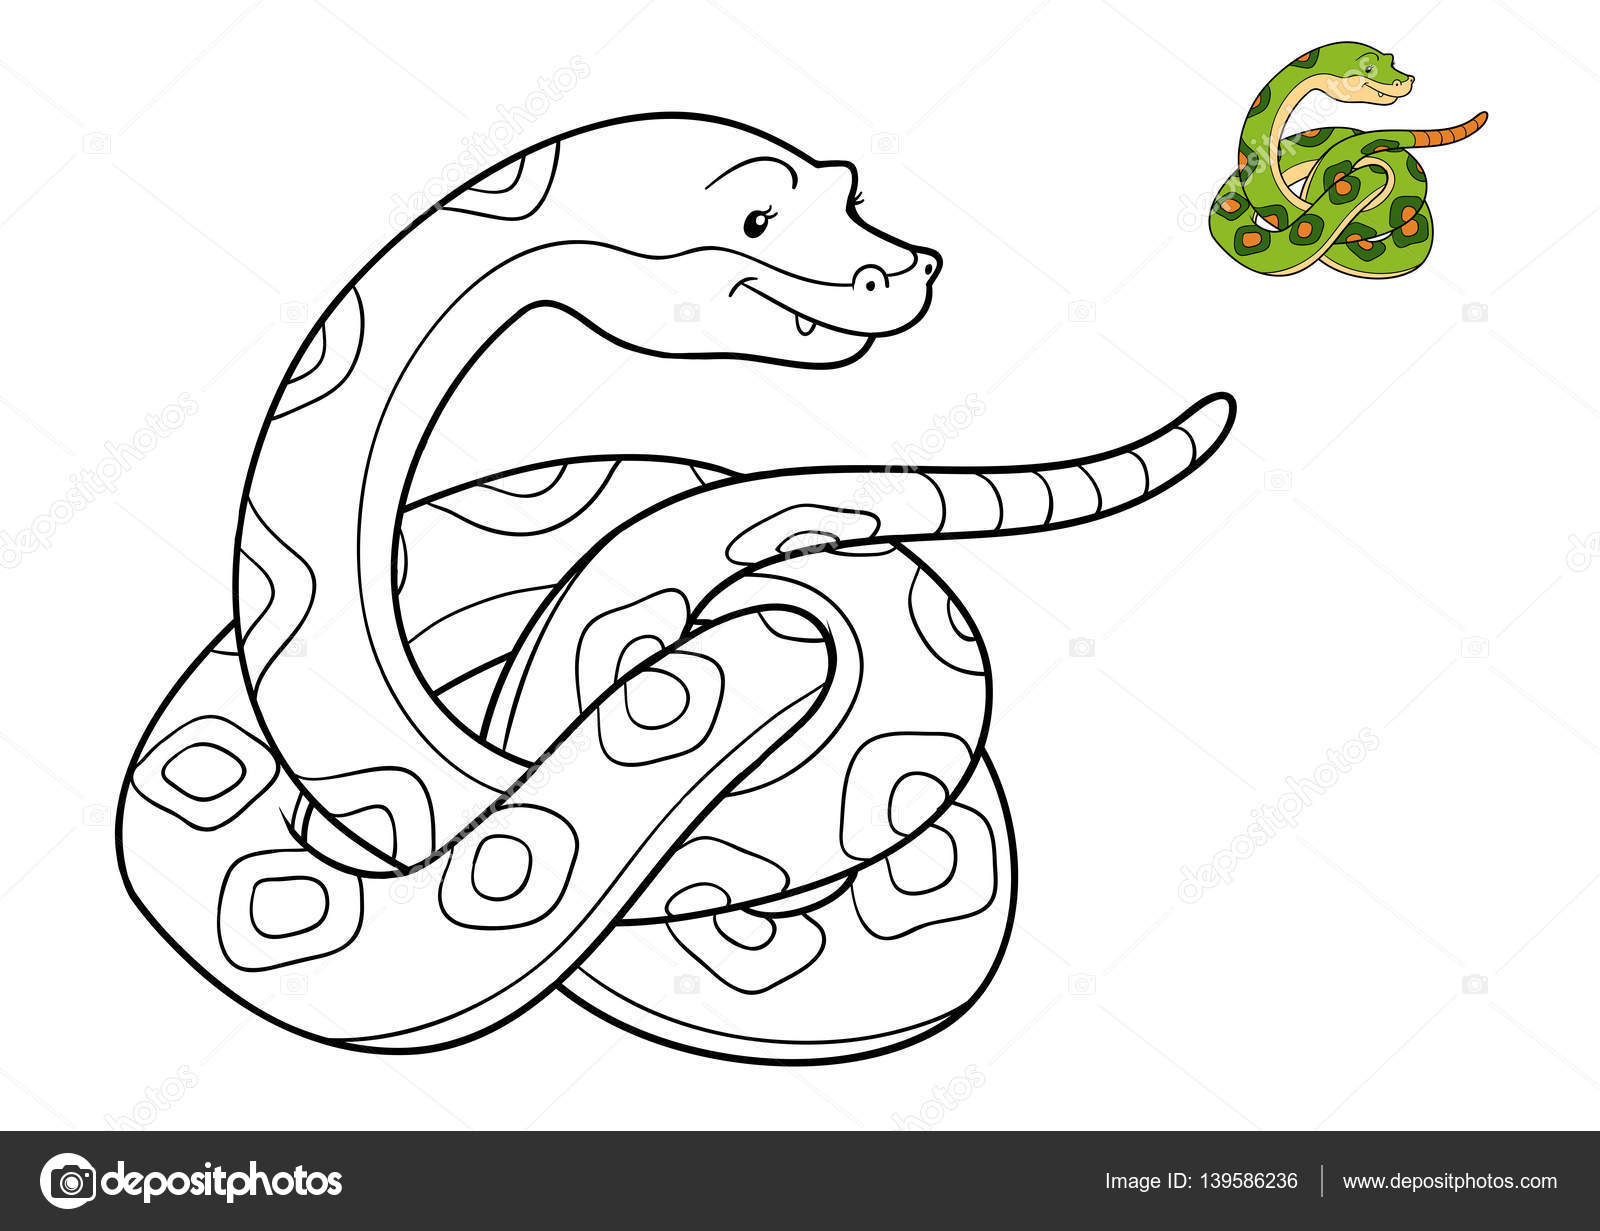 Libro de colorear, serpiente — Fotos de Stock © ksenya_savva #139586236